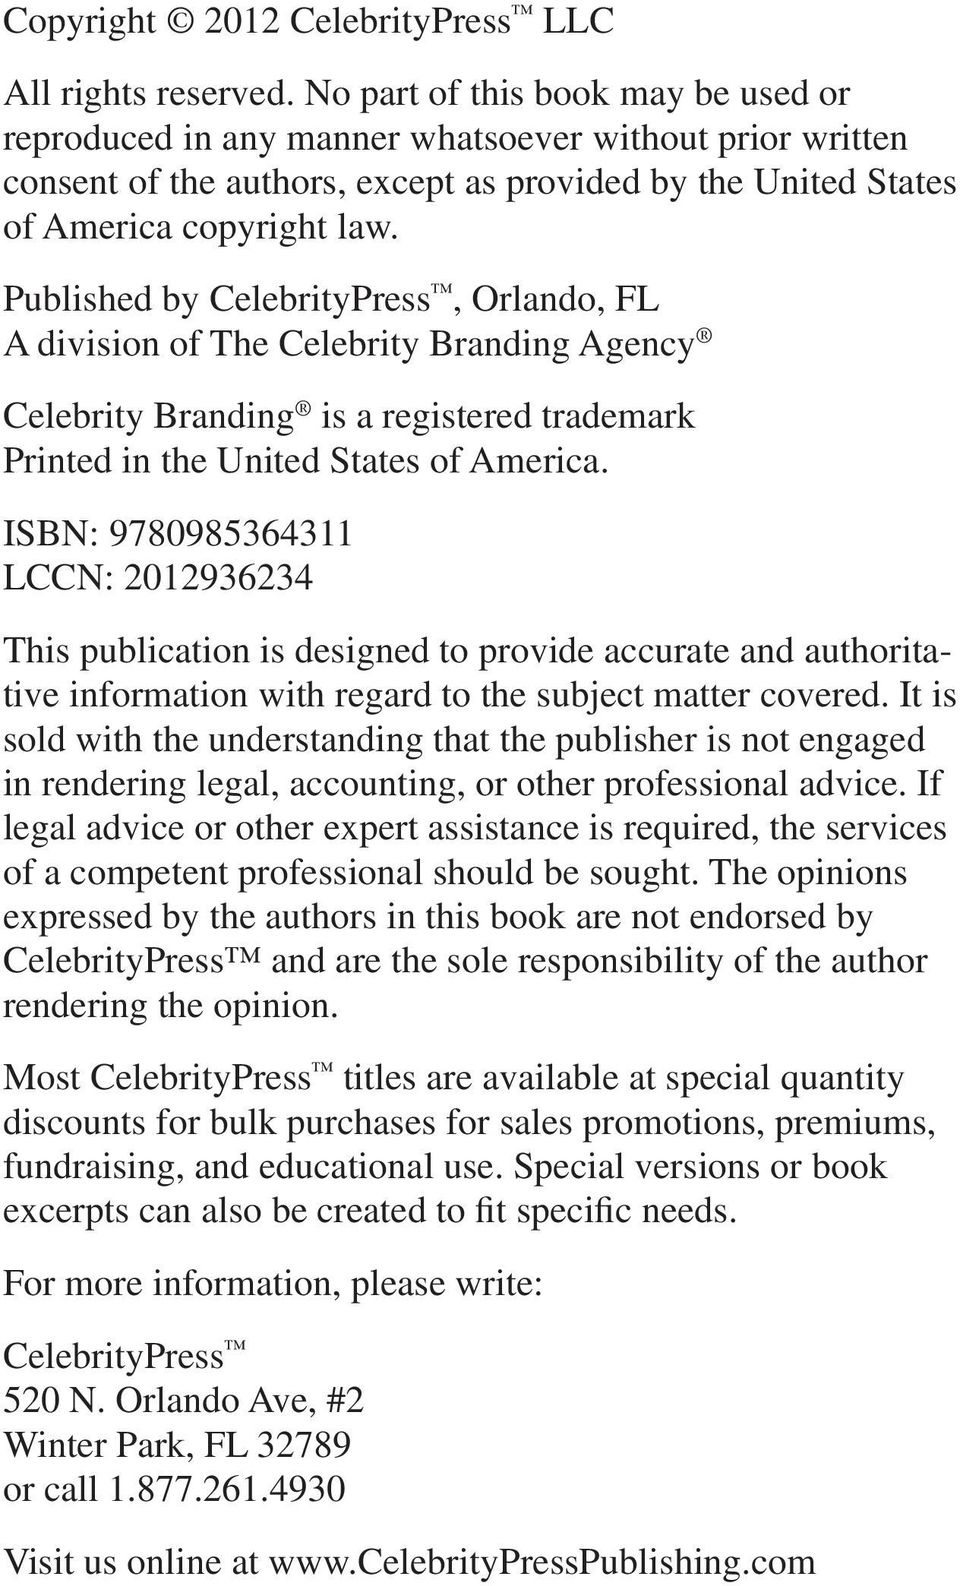 Published by CelebrityPress, Orlando, FL A division of The Celebrity Branding Agency Celebrity Branding is a registered trademark Printed in the United States of America.